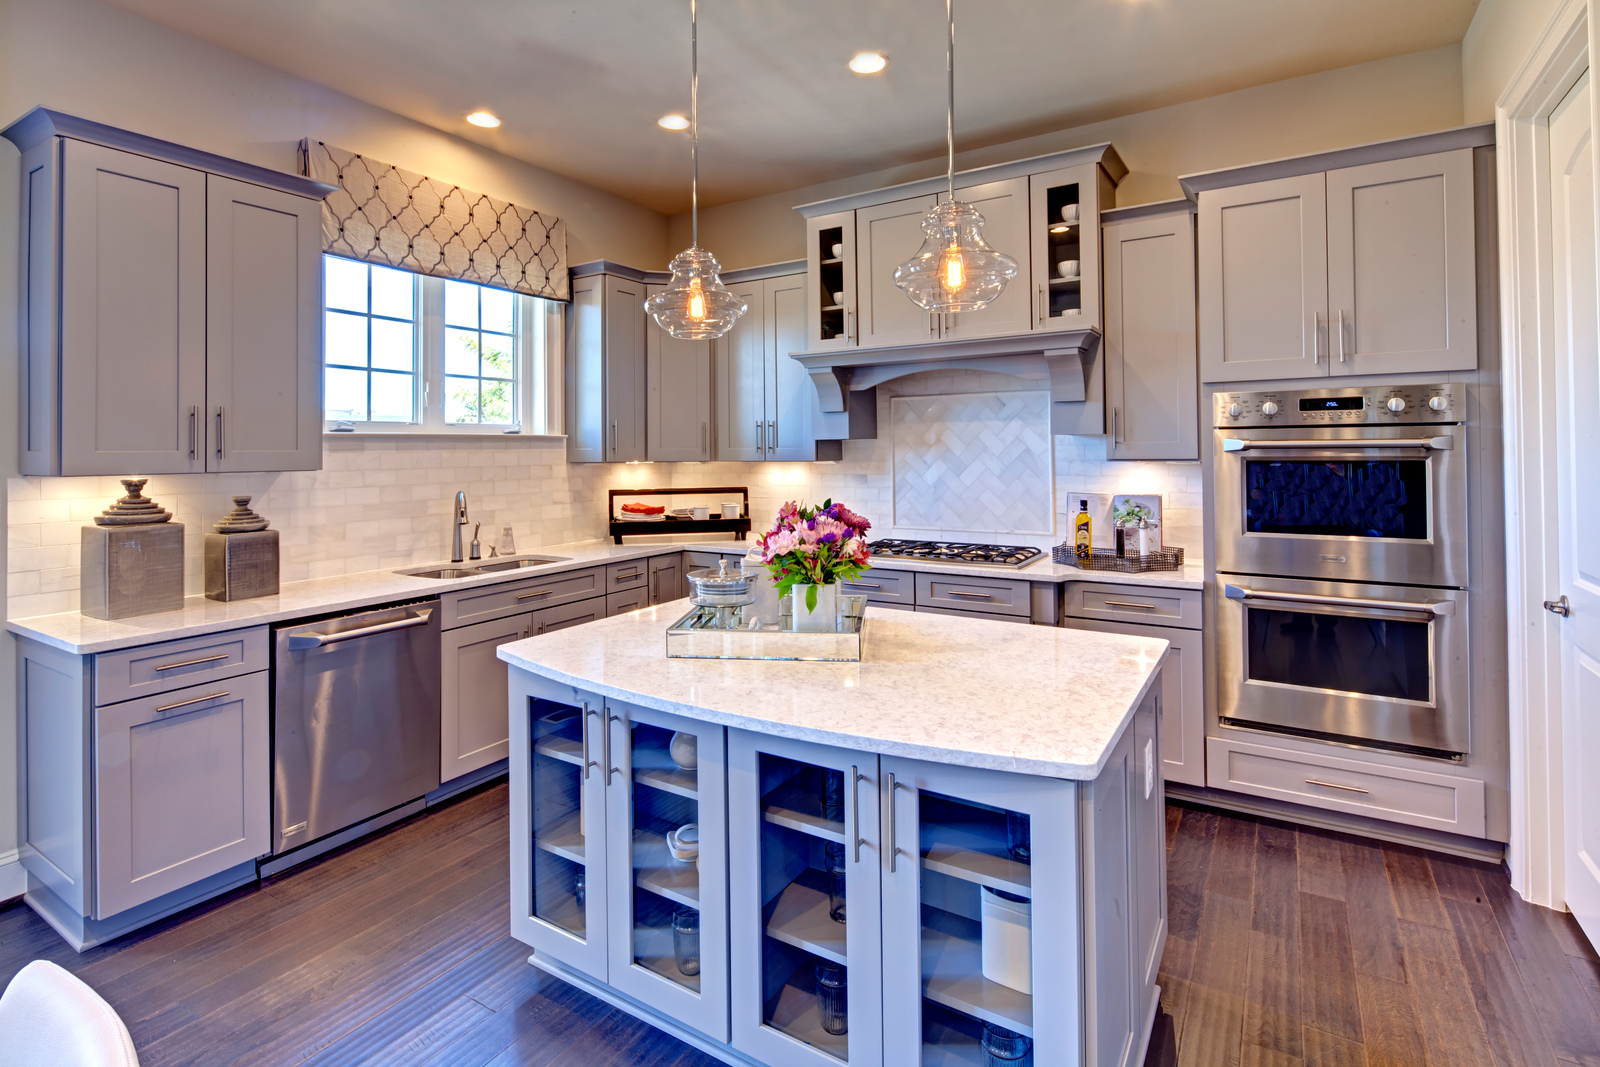 Personalize the kitchen of your dreams with NVHomes. Offering the latest in cabinetry, lighting and countertops, you'll find just the perfect design to suit your style.